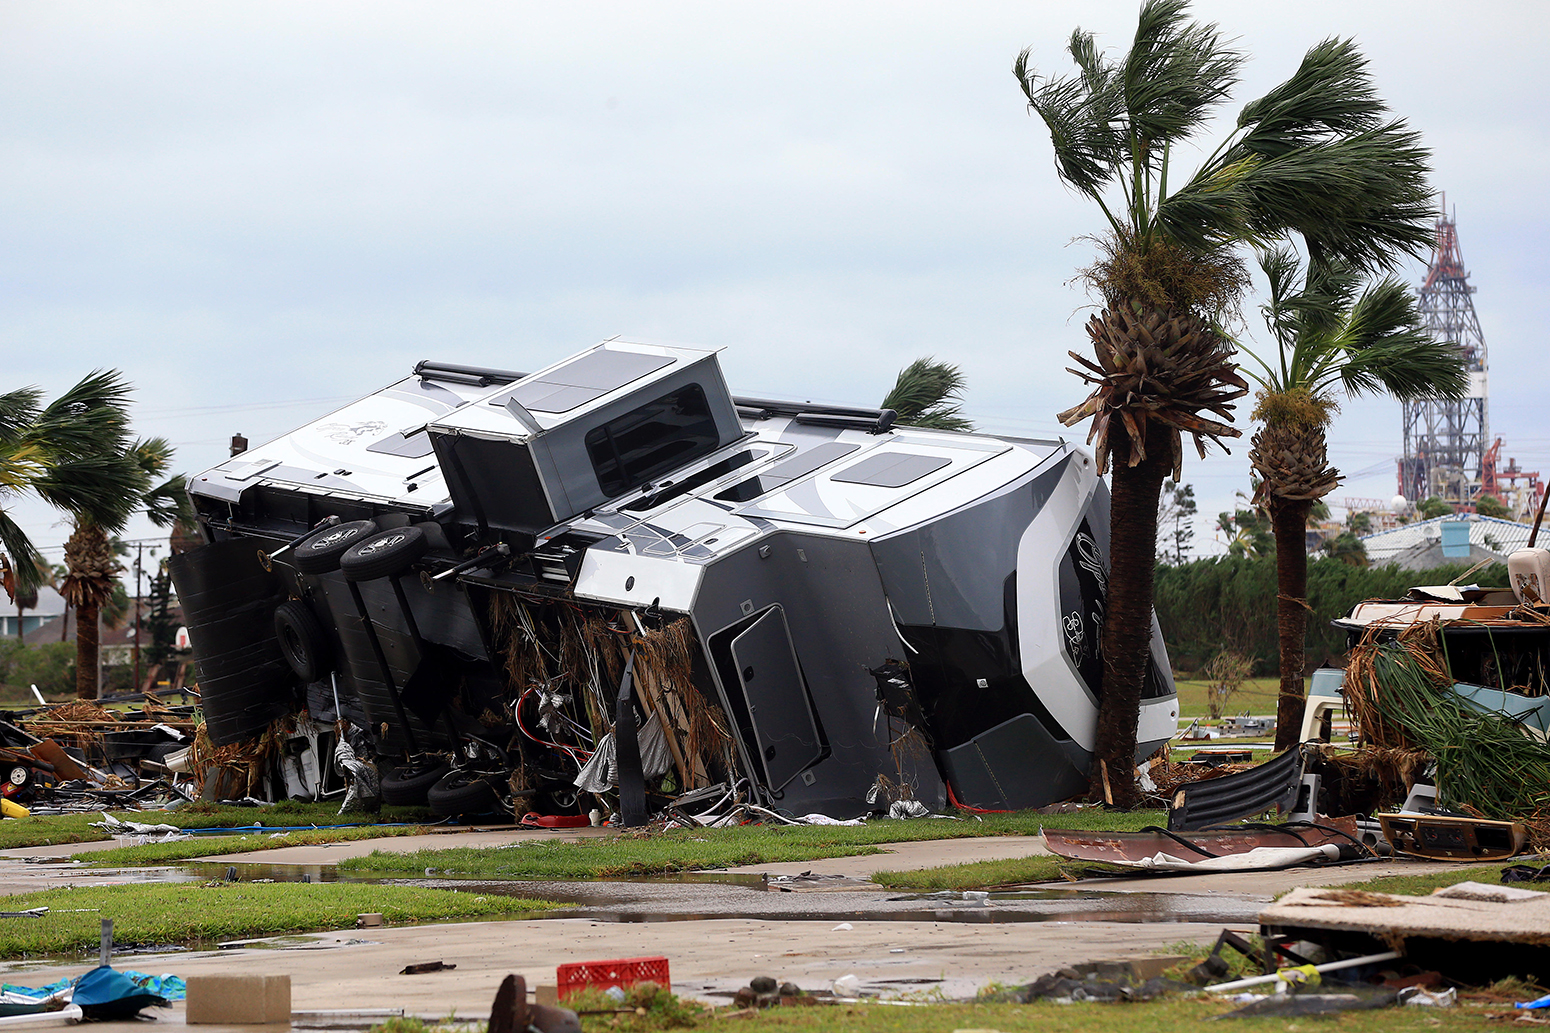 Mobile homes are destroyed at an RV park after Hurricane Harvey landed in the Coast Bend area on Saturday, Aug. 26, 2017, in Port Aransas, Texas.